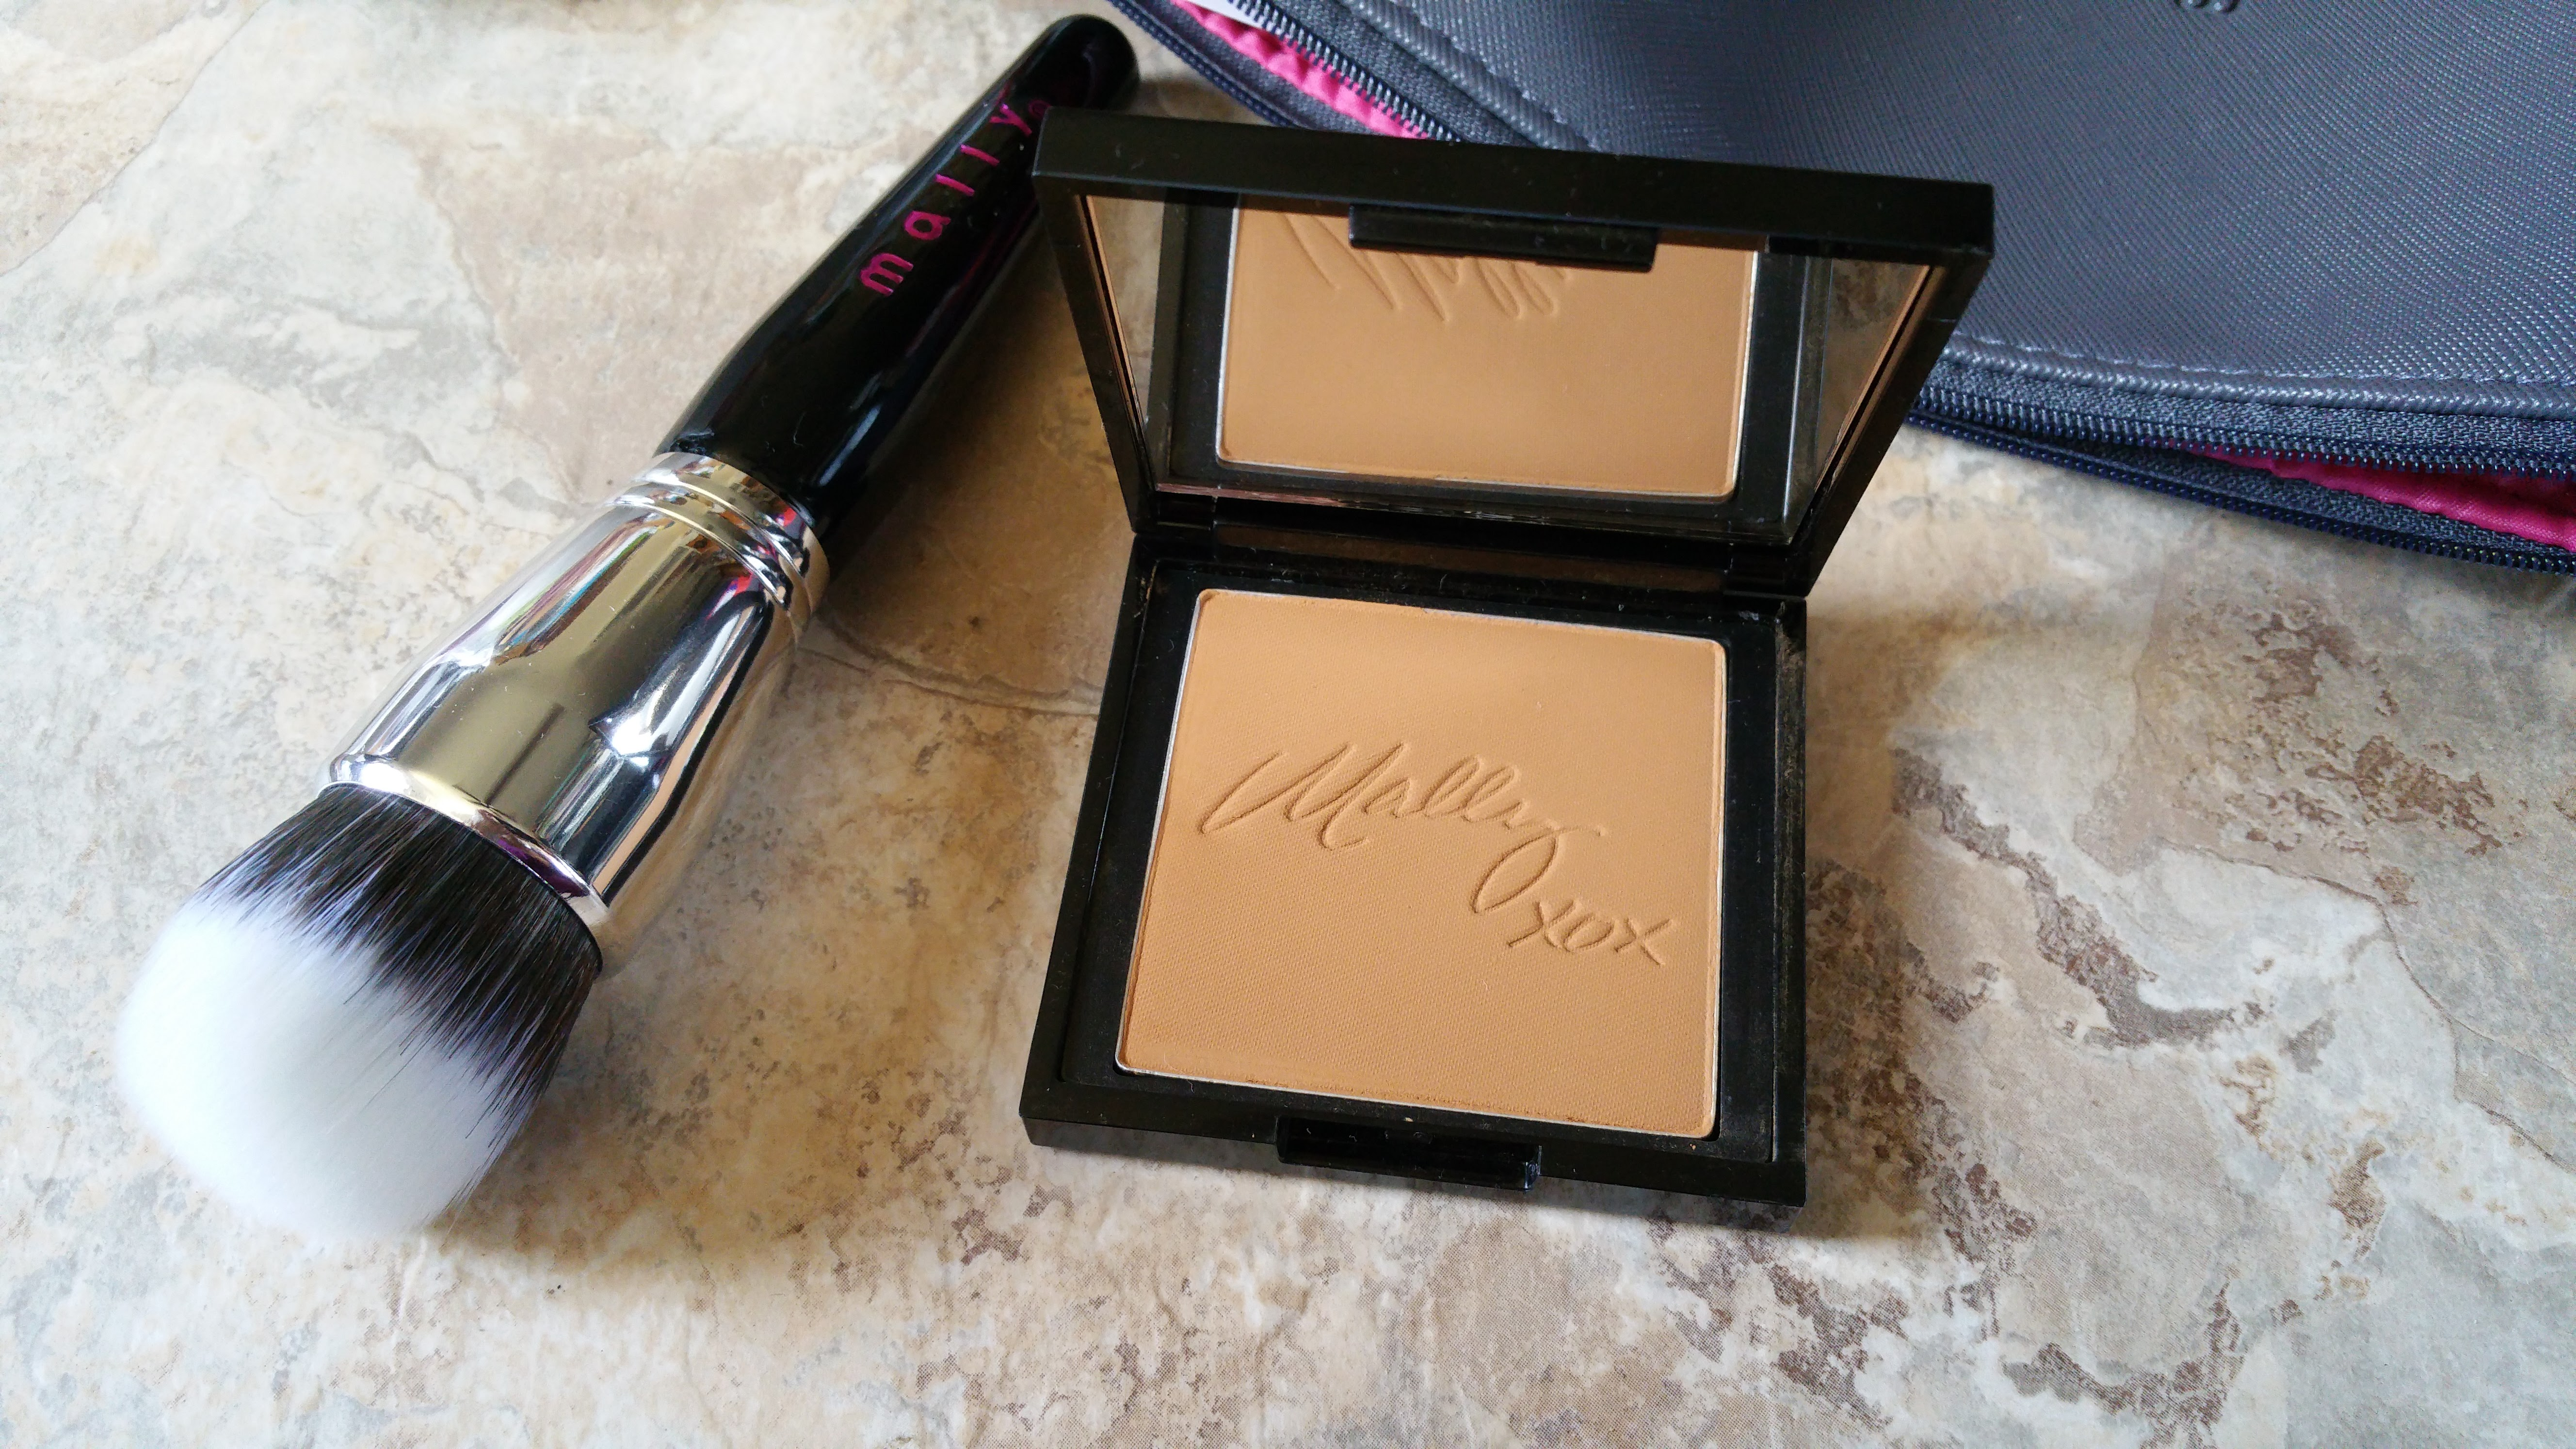 Mally The Good Life 6-piece Color Collection, Mally Beauty, mally roncal, 4K HD, foundation, shadow stick, lipgloss, lipstick, foundation, makeup brush, foundation brush, mascara, review, swatches,